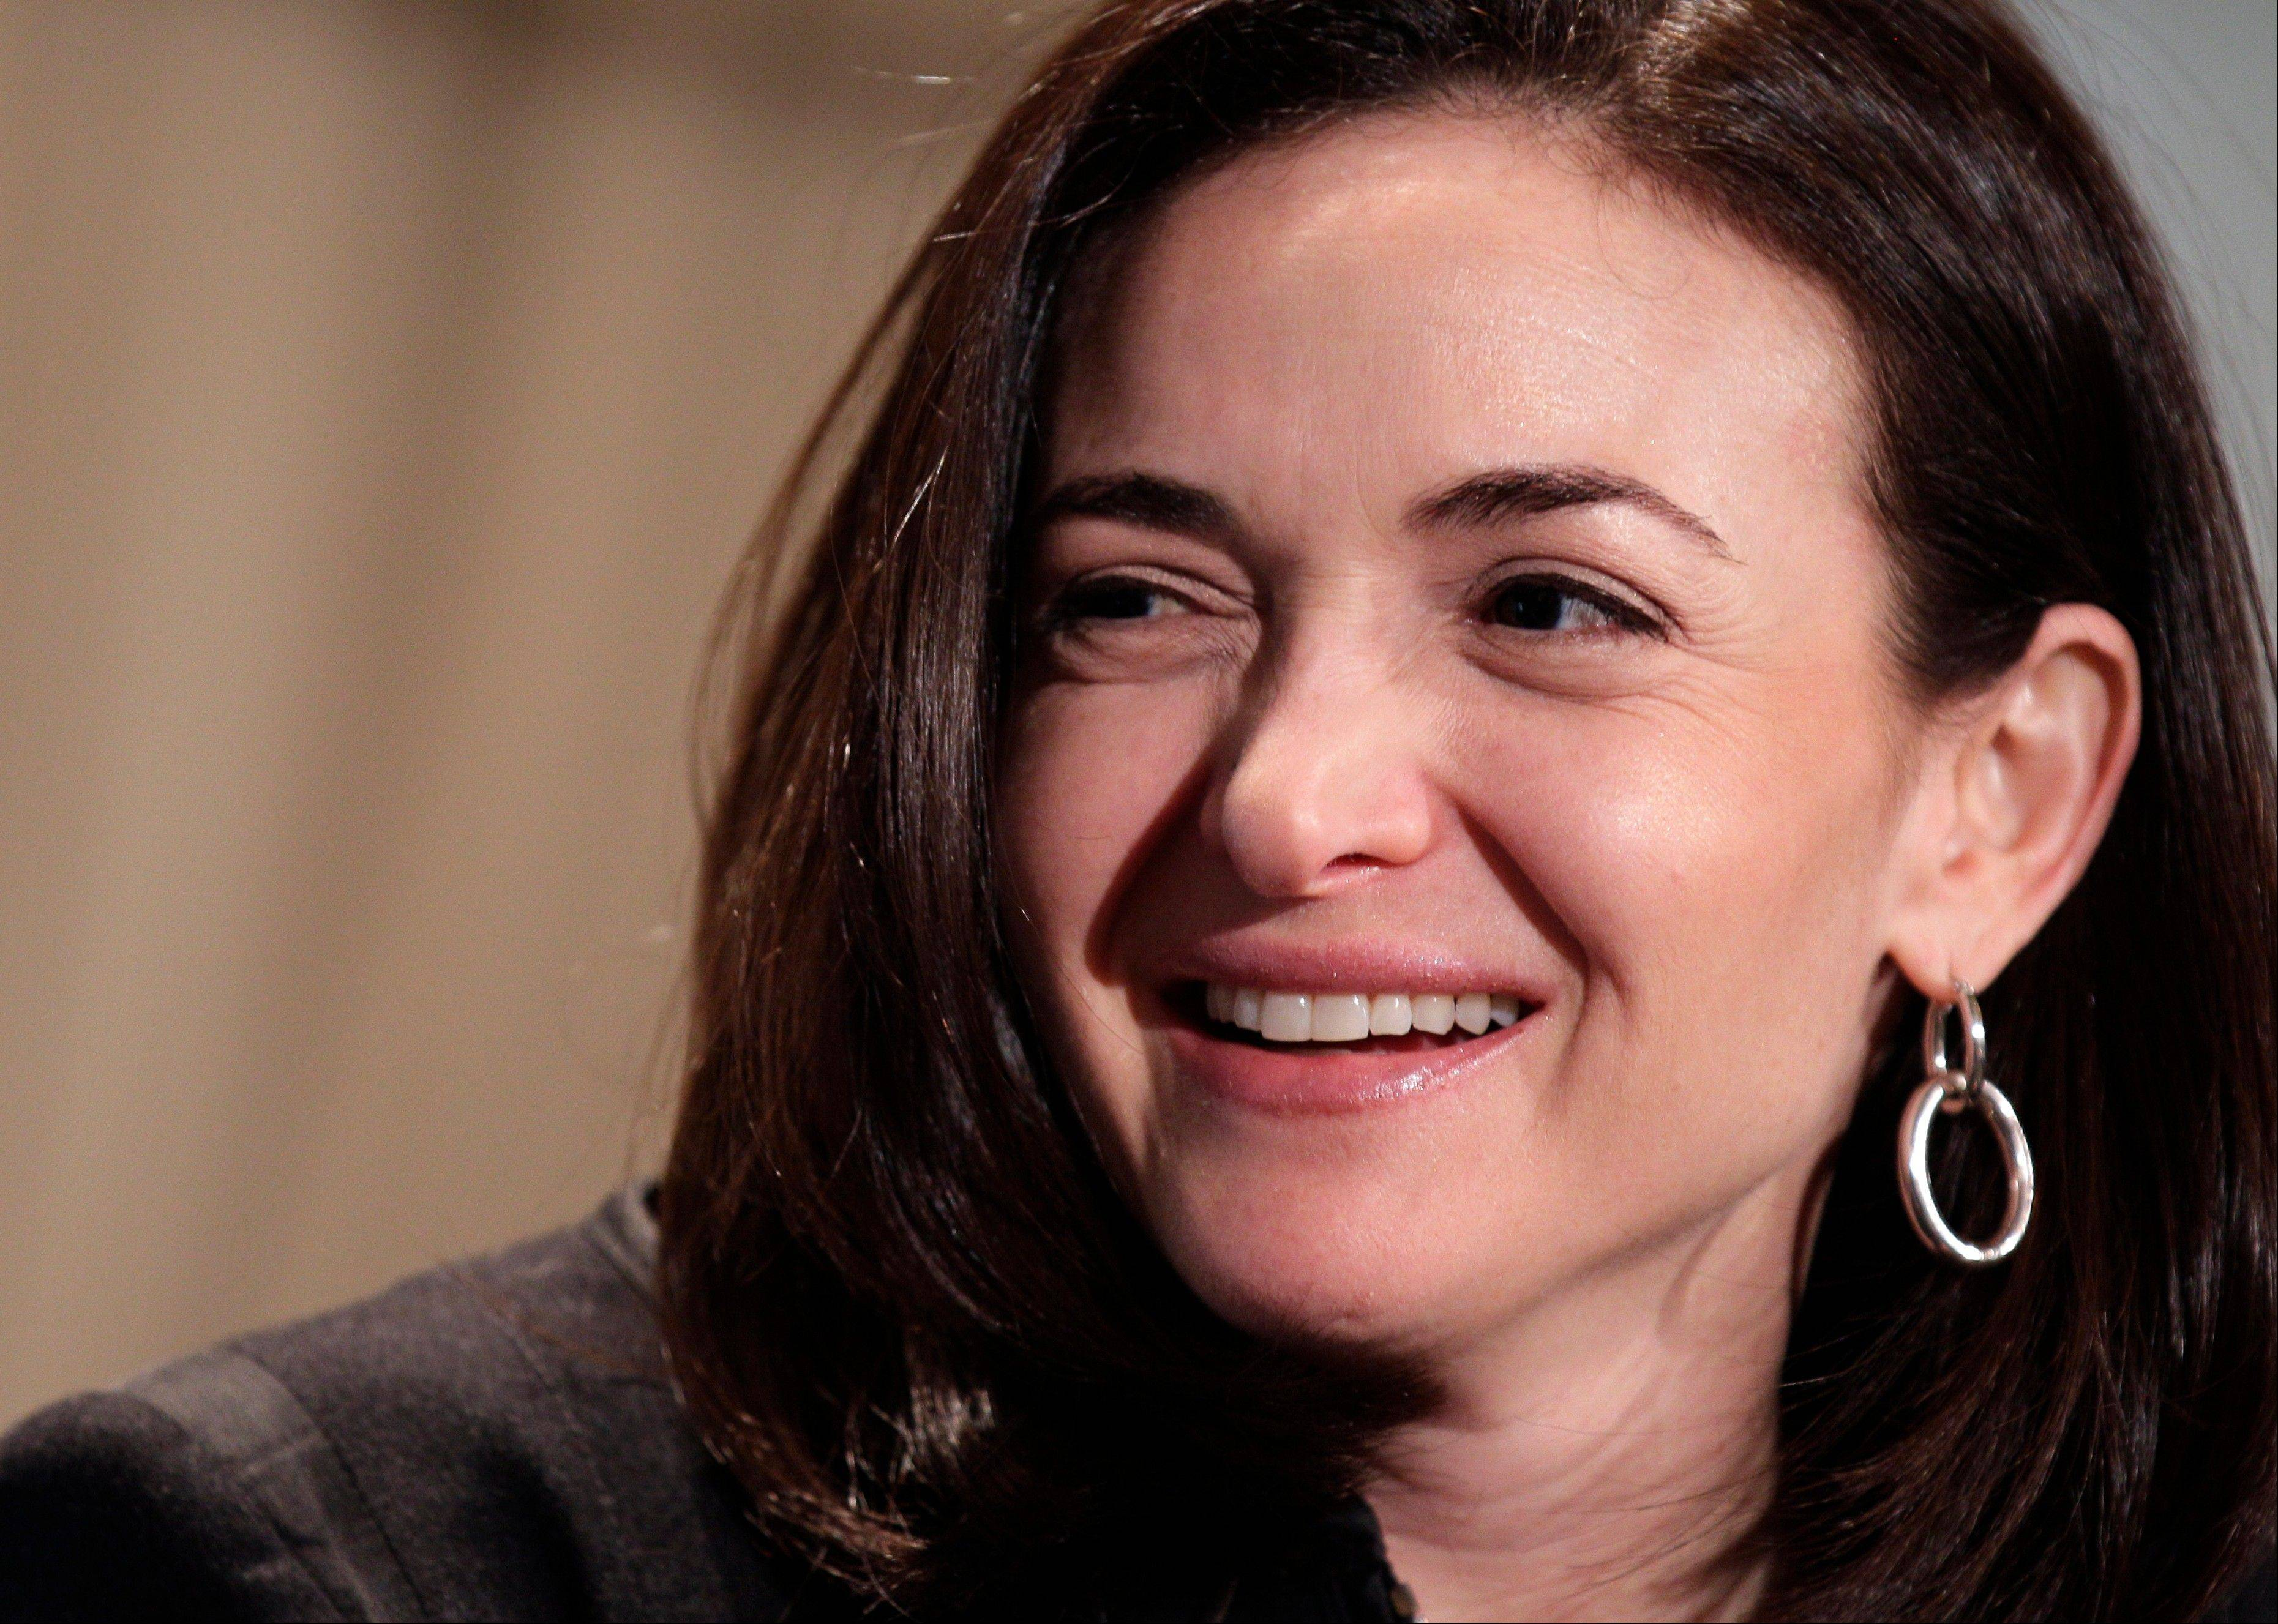 Sheryl Sandberg, Facebook's chief operating officer, aims to arm women with the tools and guidance they need to keep moving forward in the workforce.